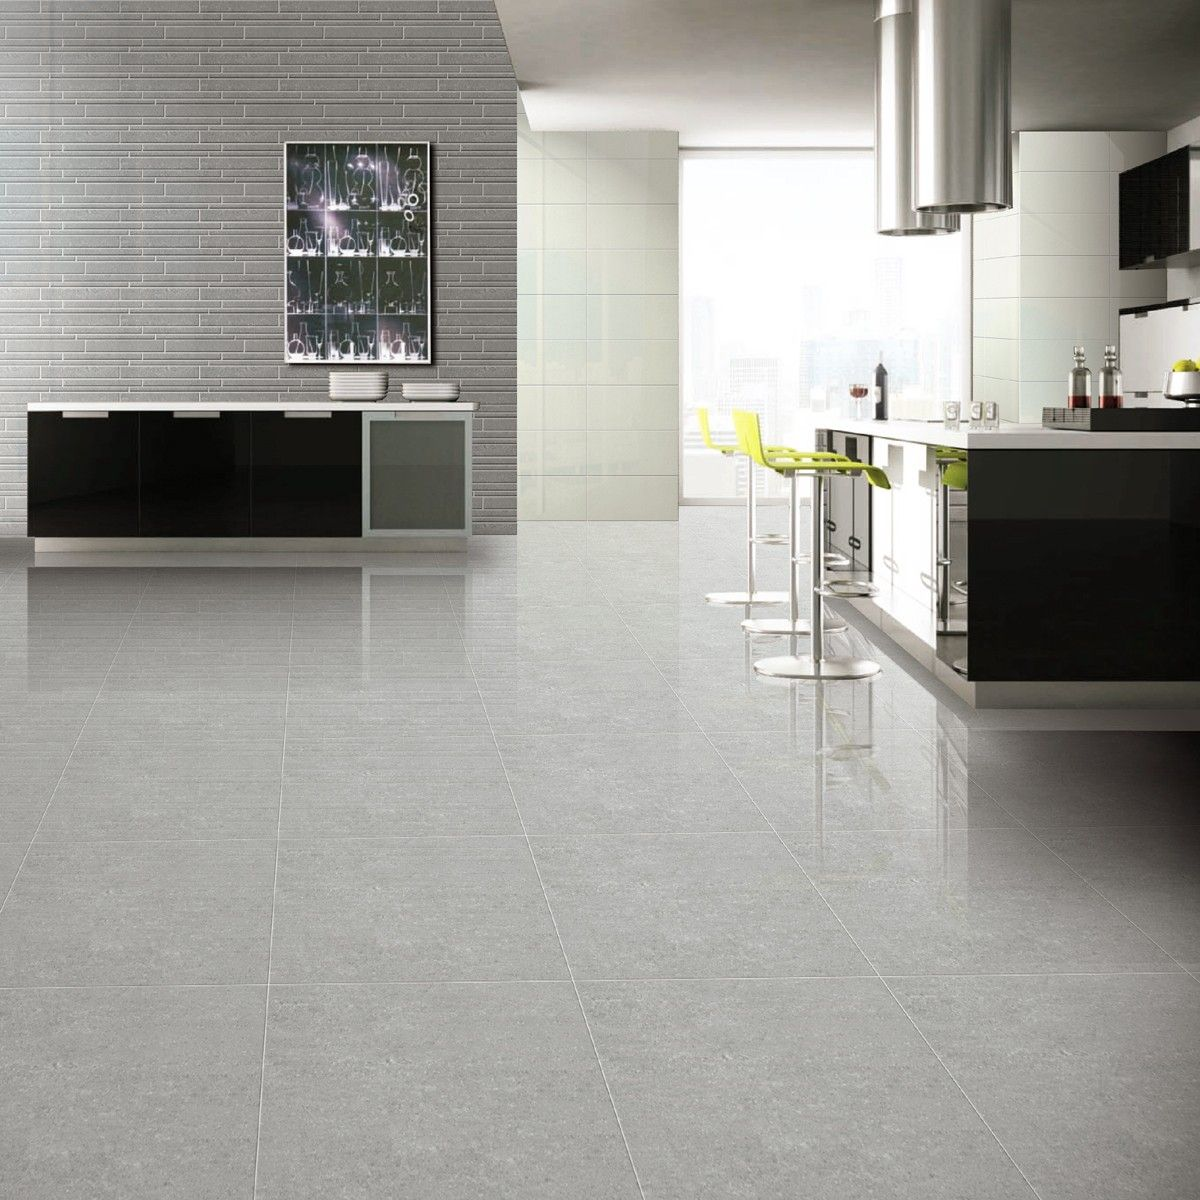 Polished Kitchen Floor Tiles 60x60 Super Polished Grey Porcelain Floor Tiles Tile Choice